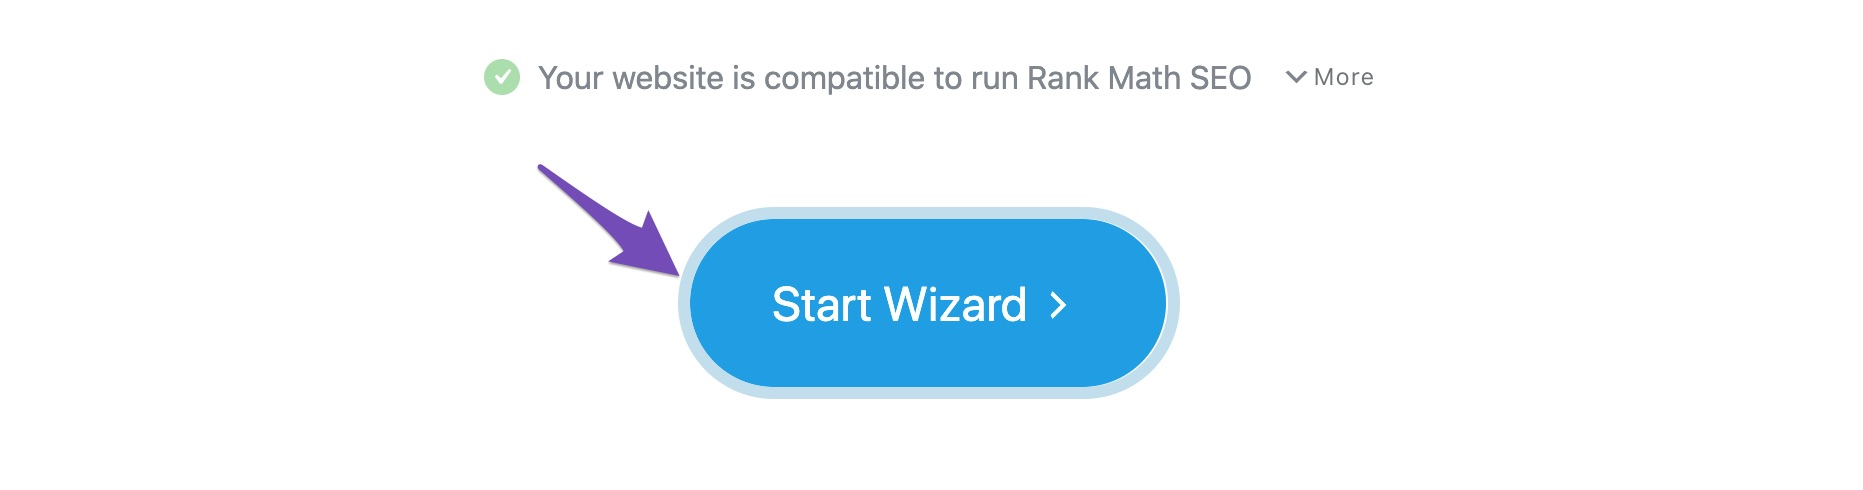 Start wizard to setup Rank Math